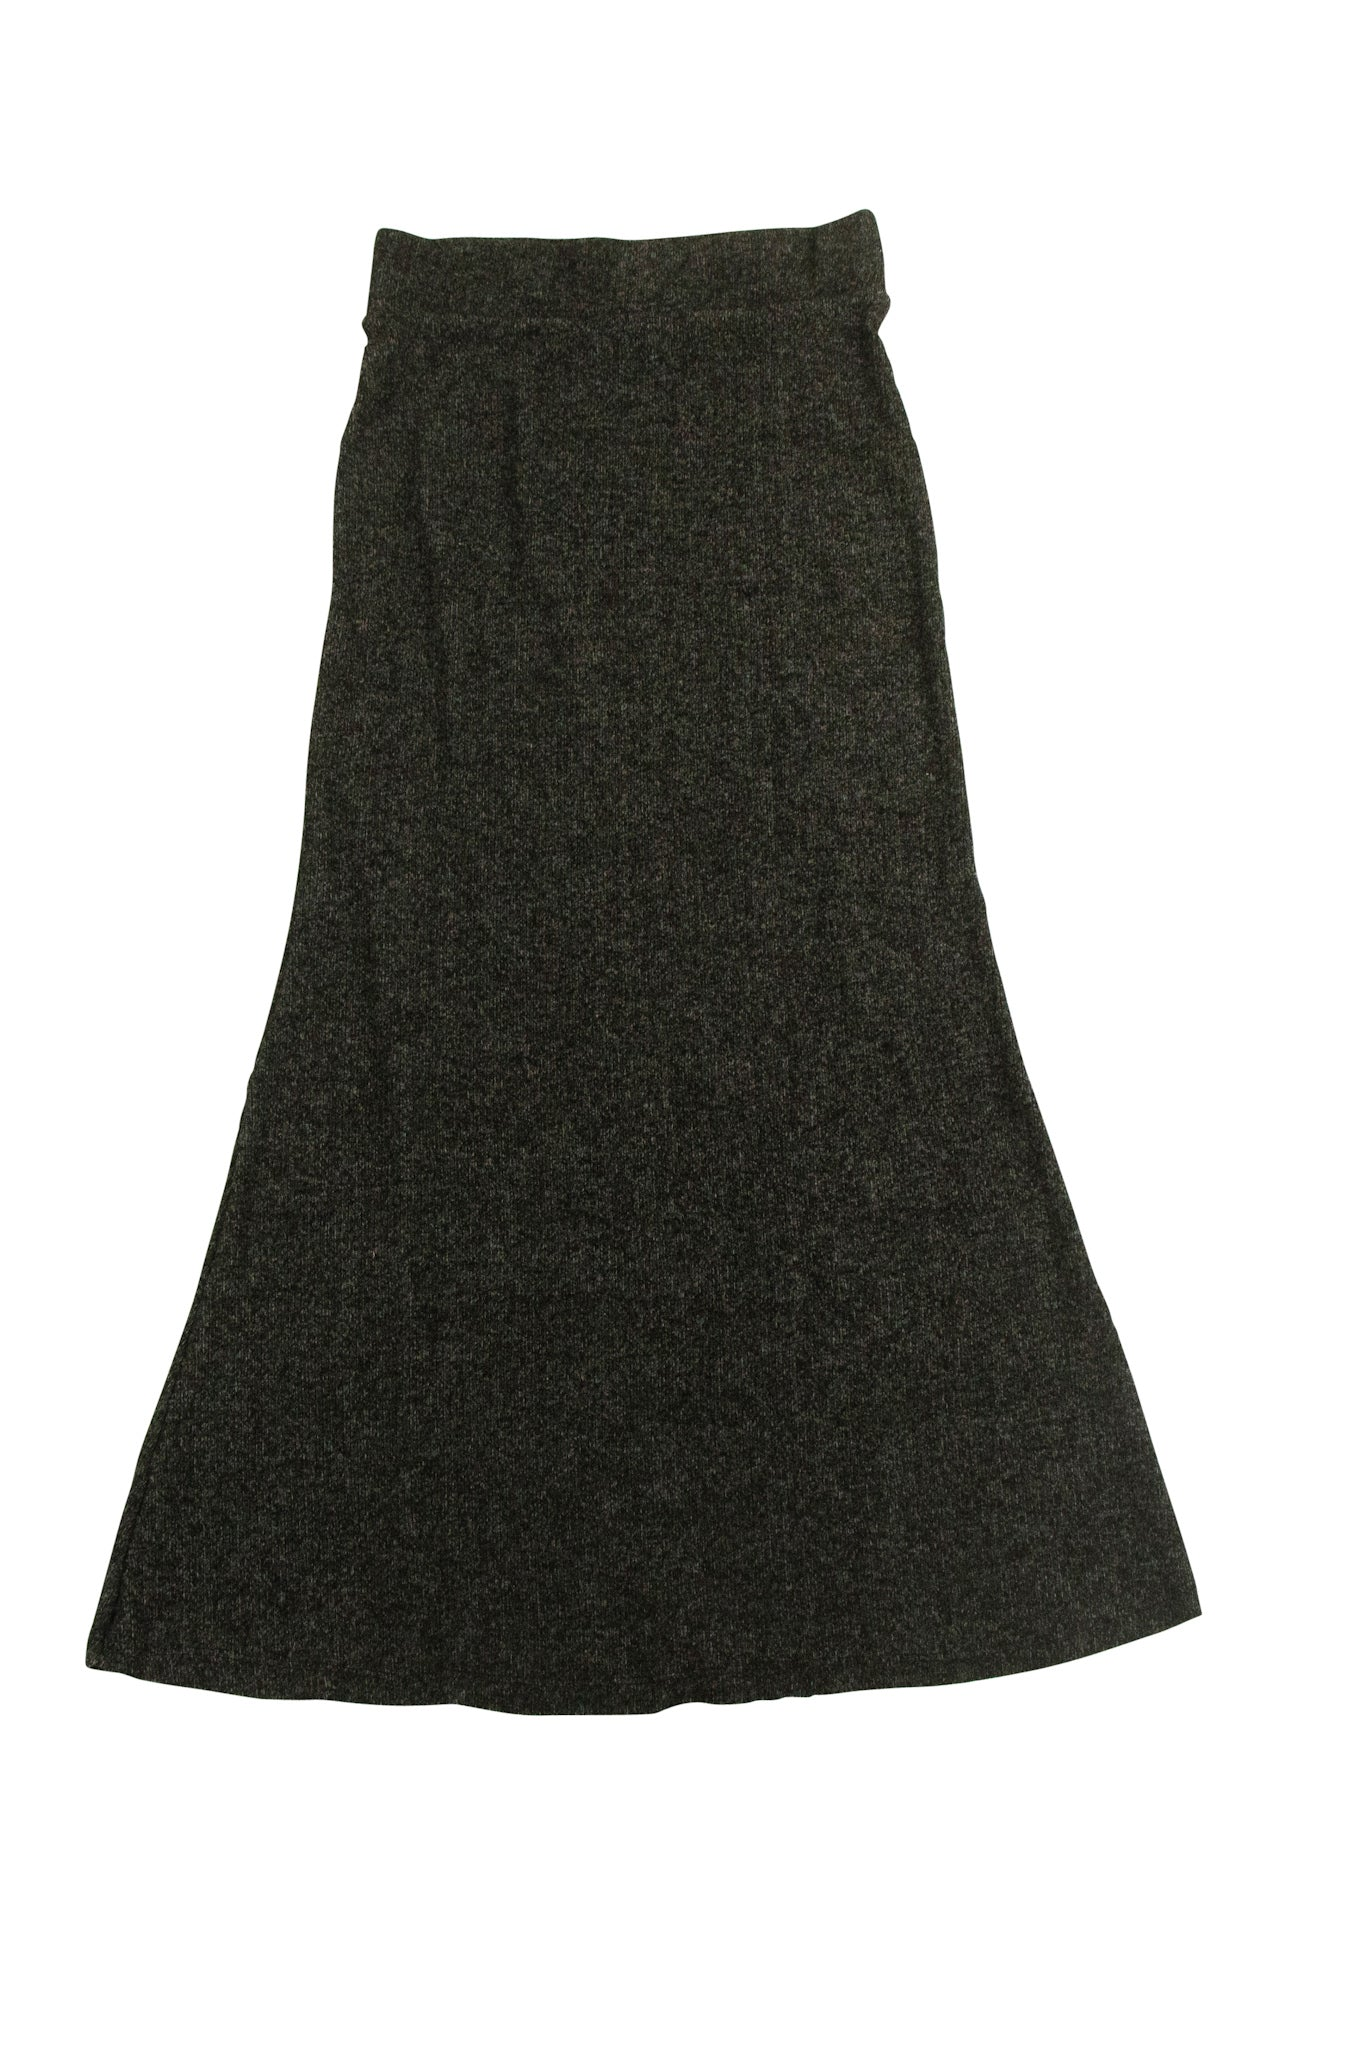 Beatrix Skirt in Dark Grey